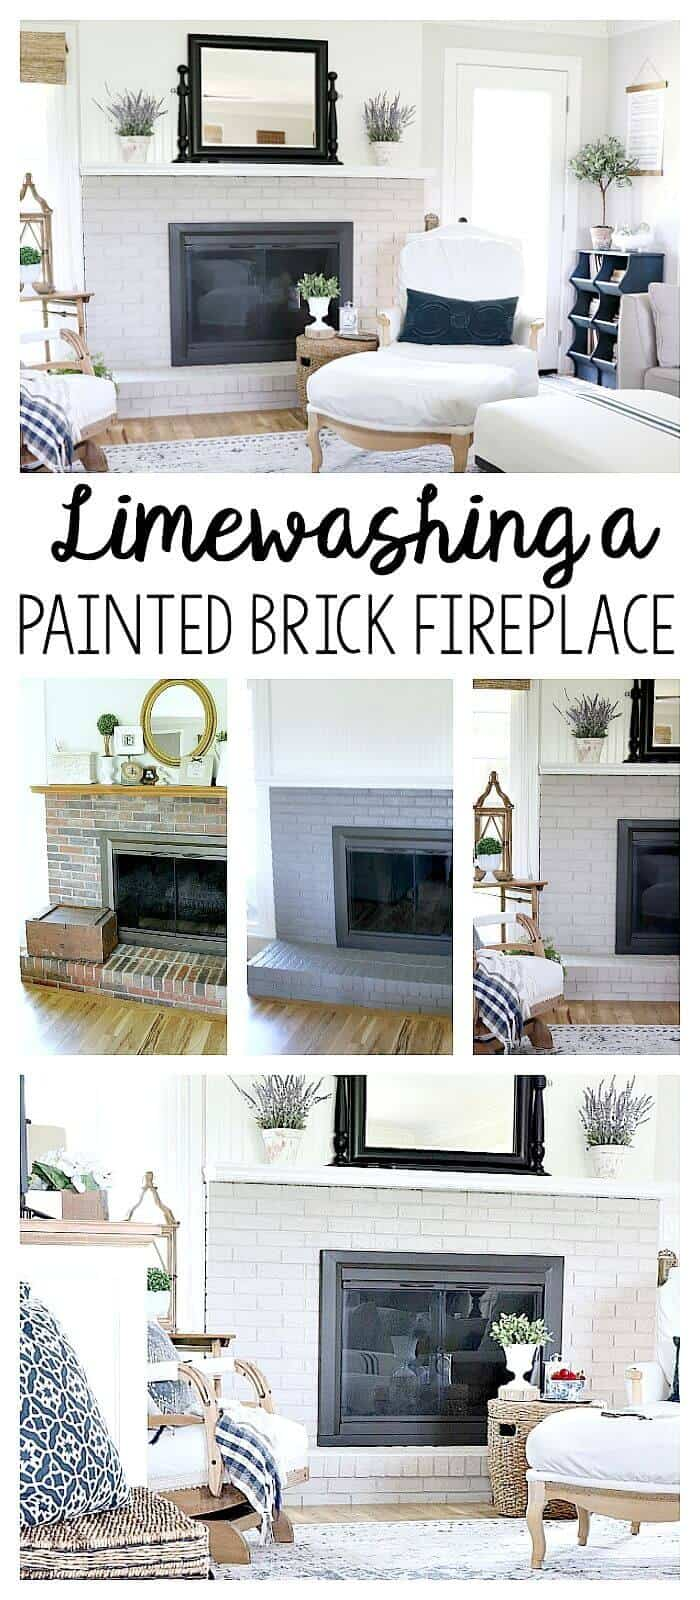 Limewashing a Painted Brick Fireplace - how we transformed our ugly and dated brick fireplace into a gorgeous focal point.